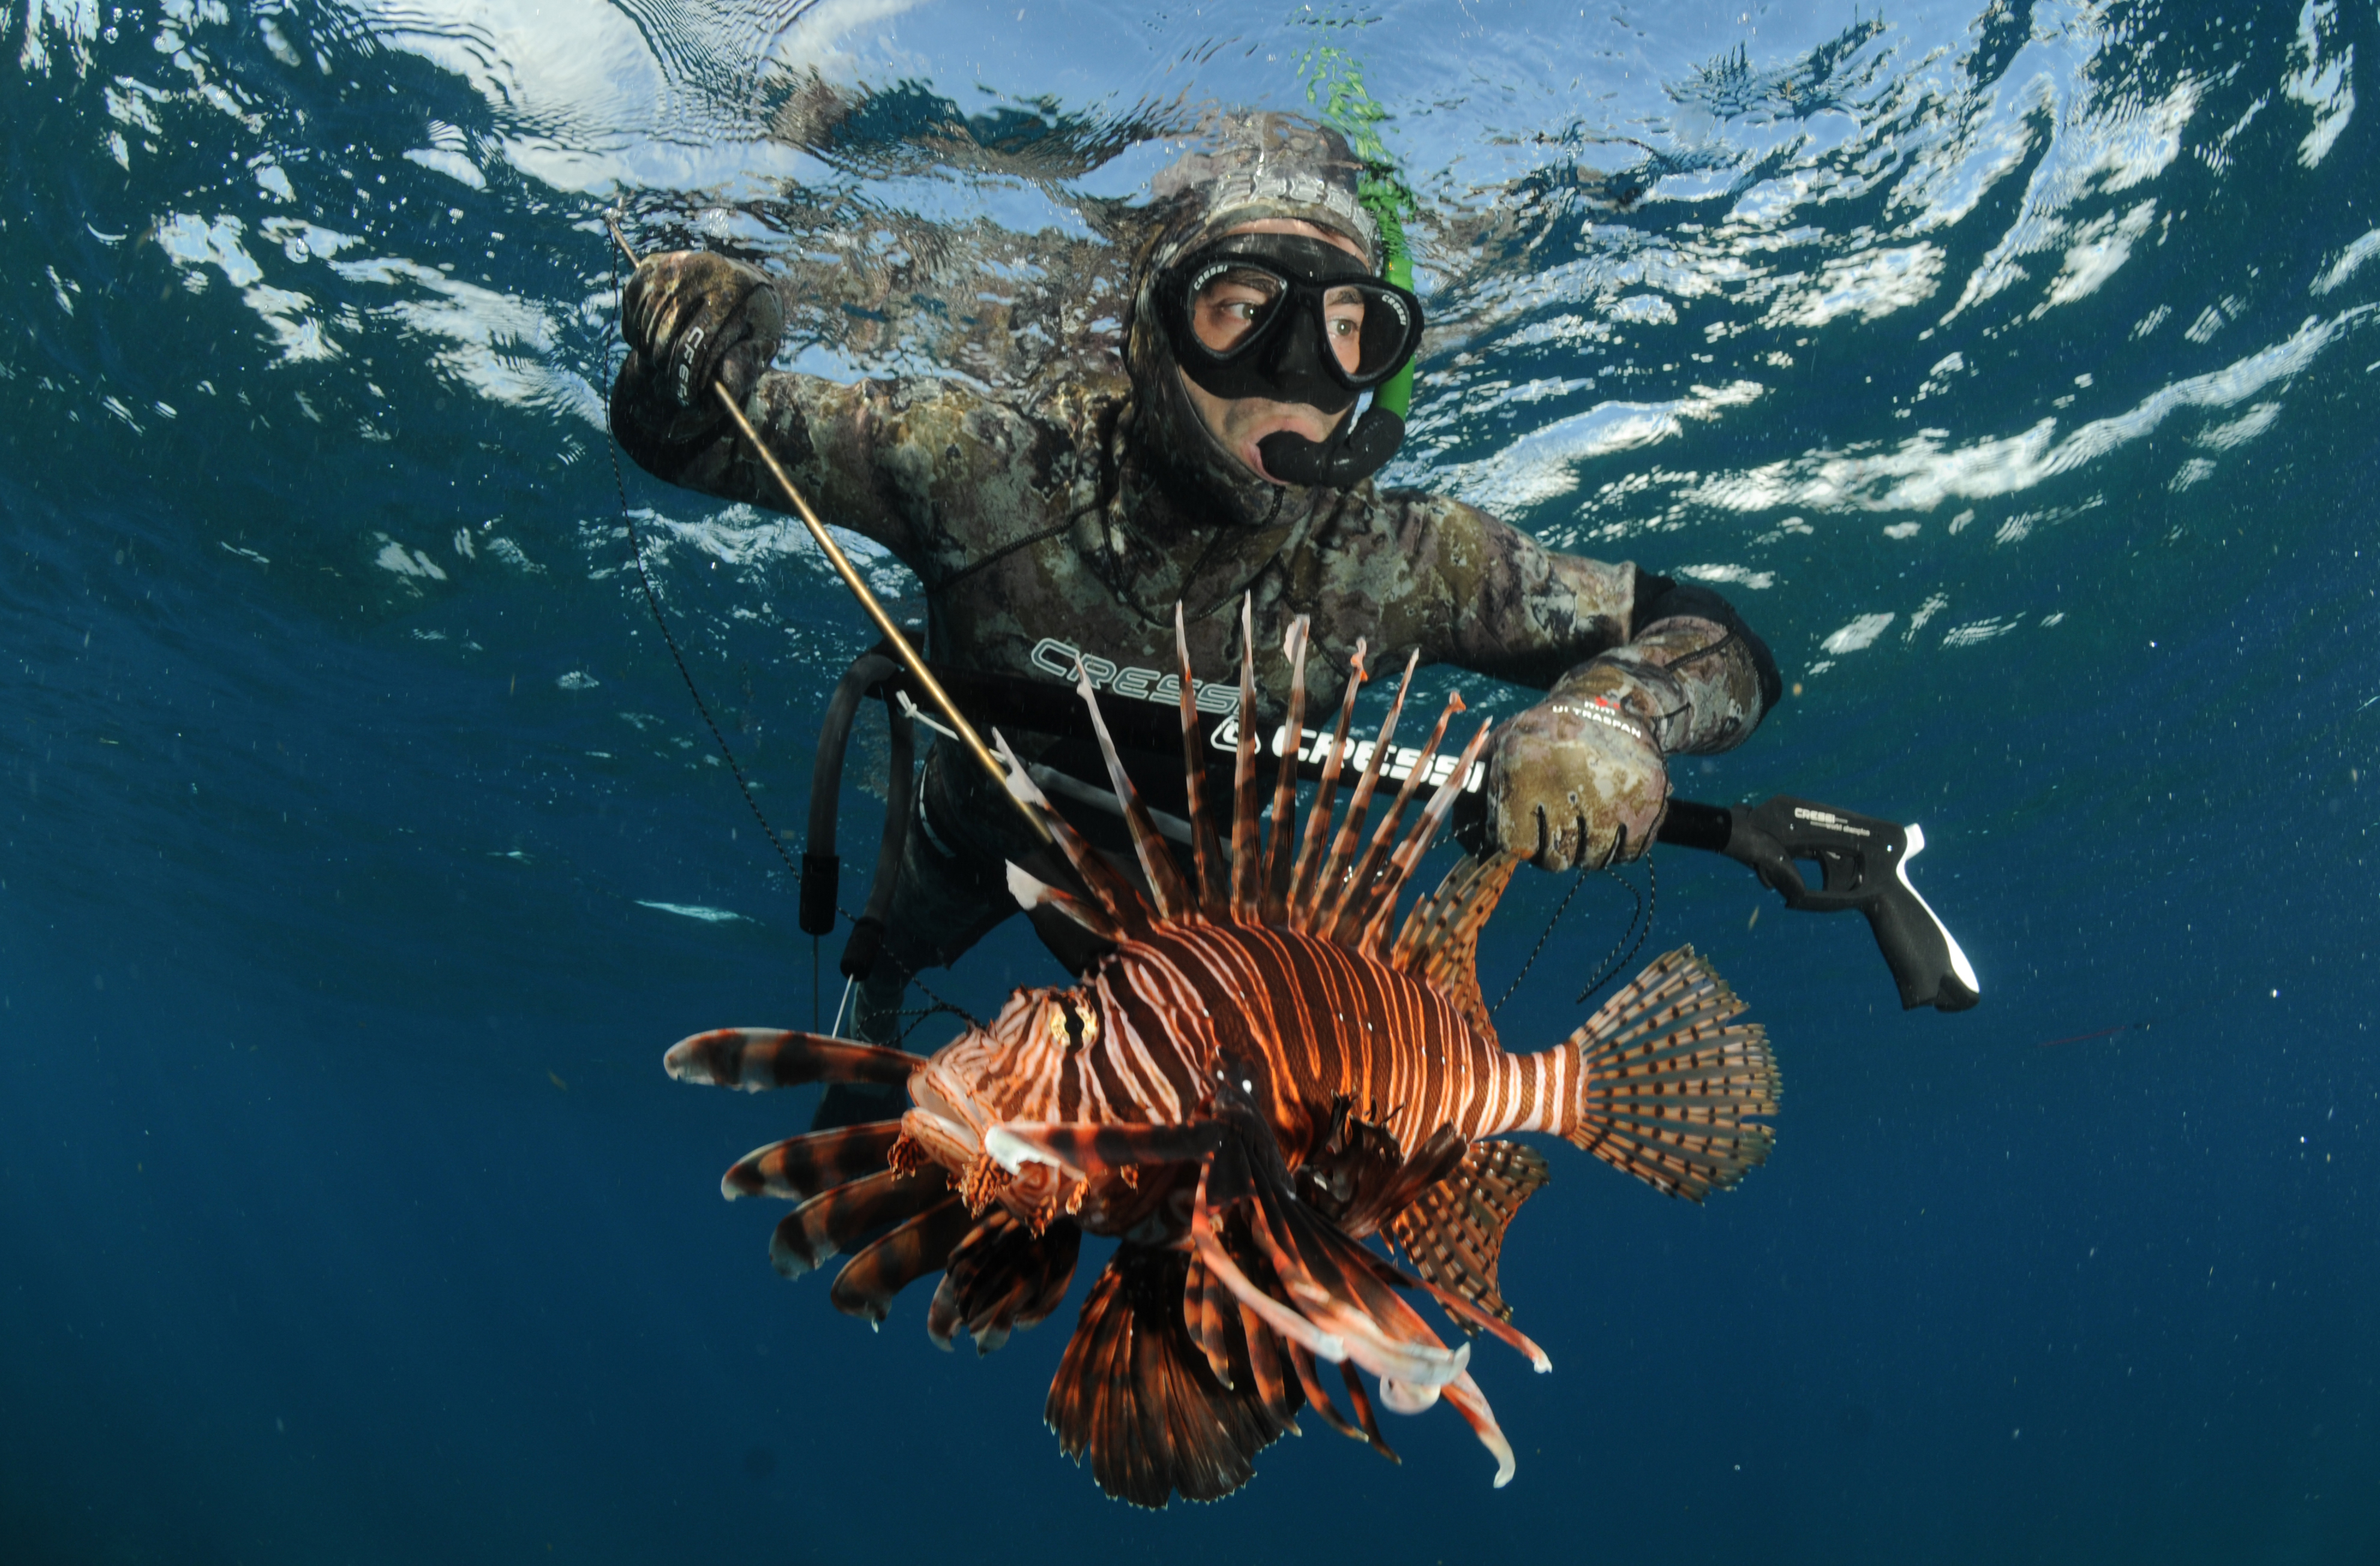 Florida Wages War On Lionfish That Is Its Harming